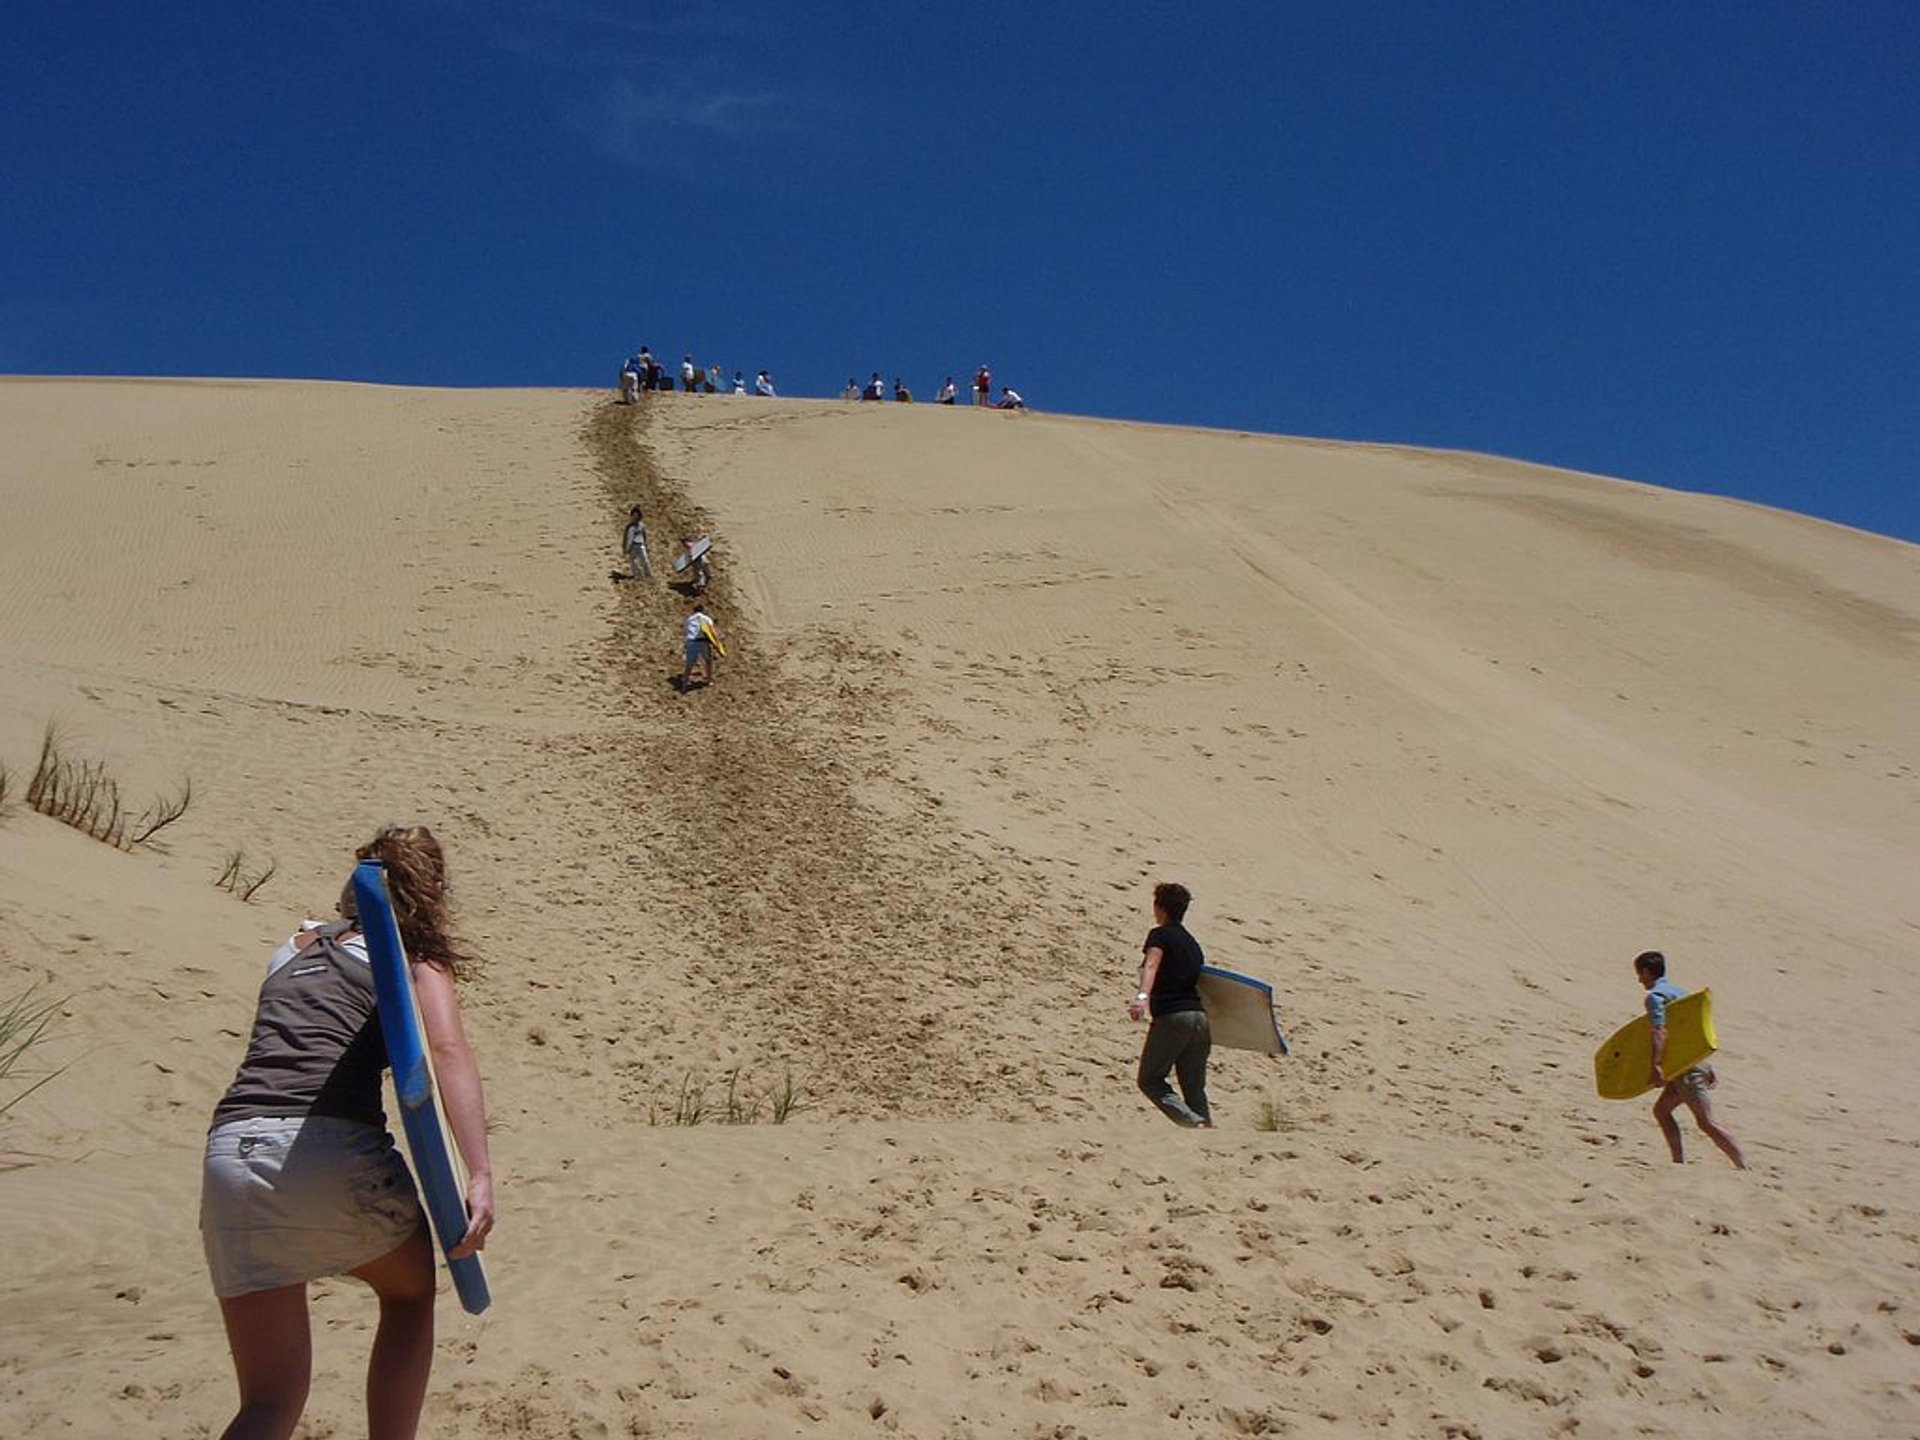 Body Board Down the Sand Dunes in New Zealand - Best Season